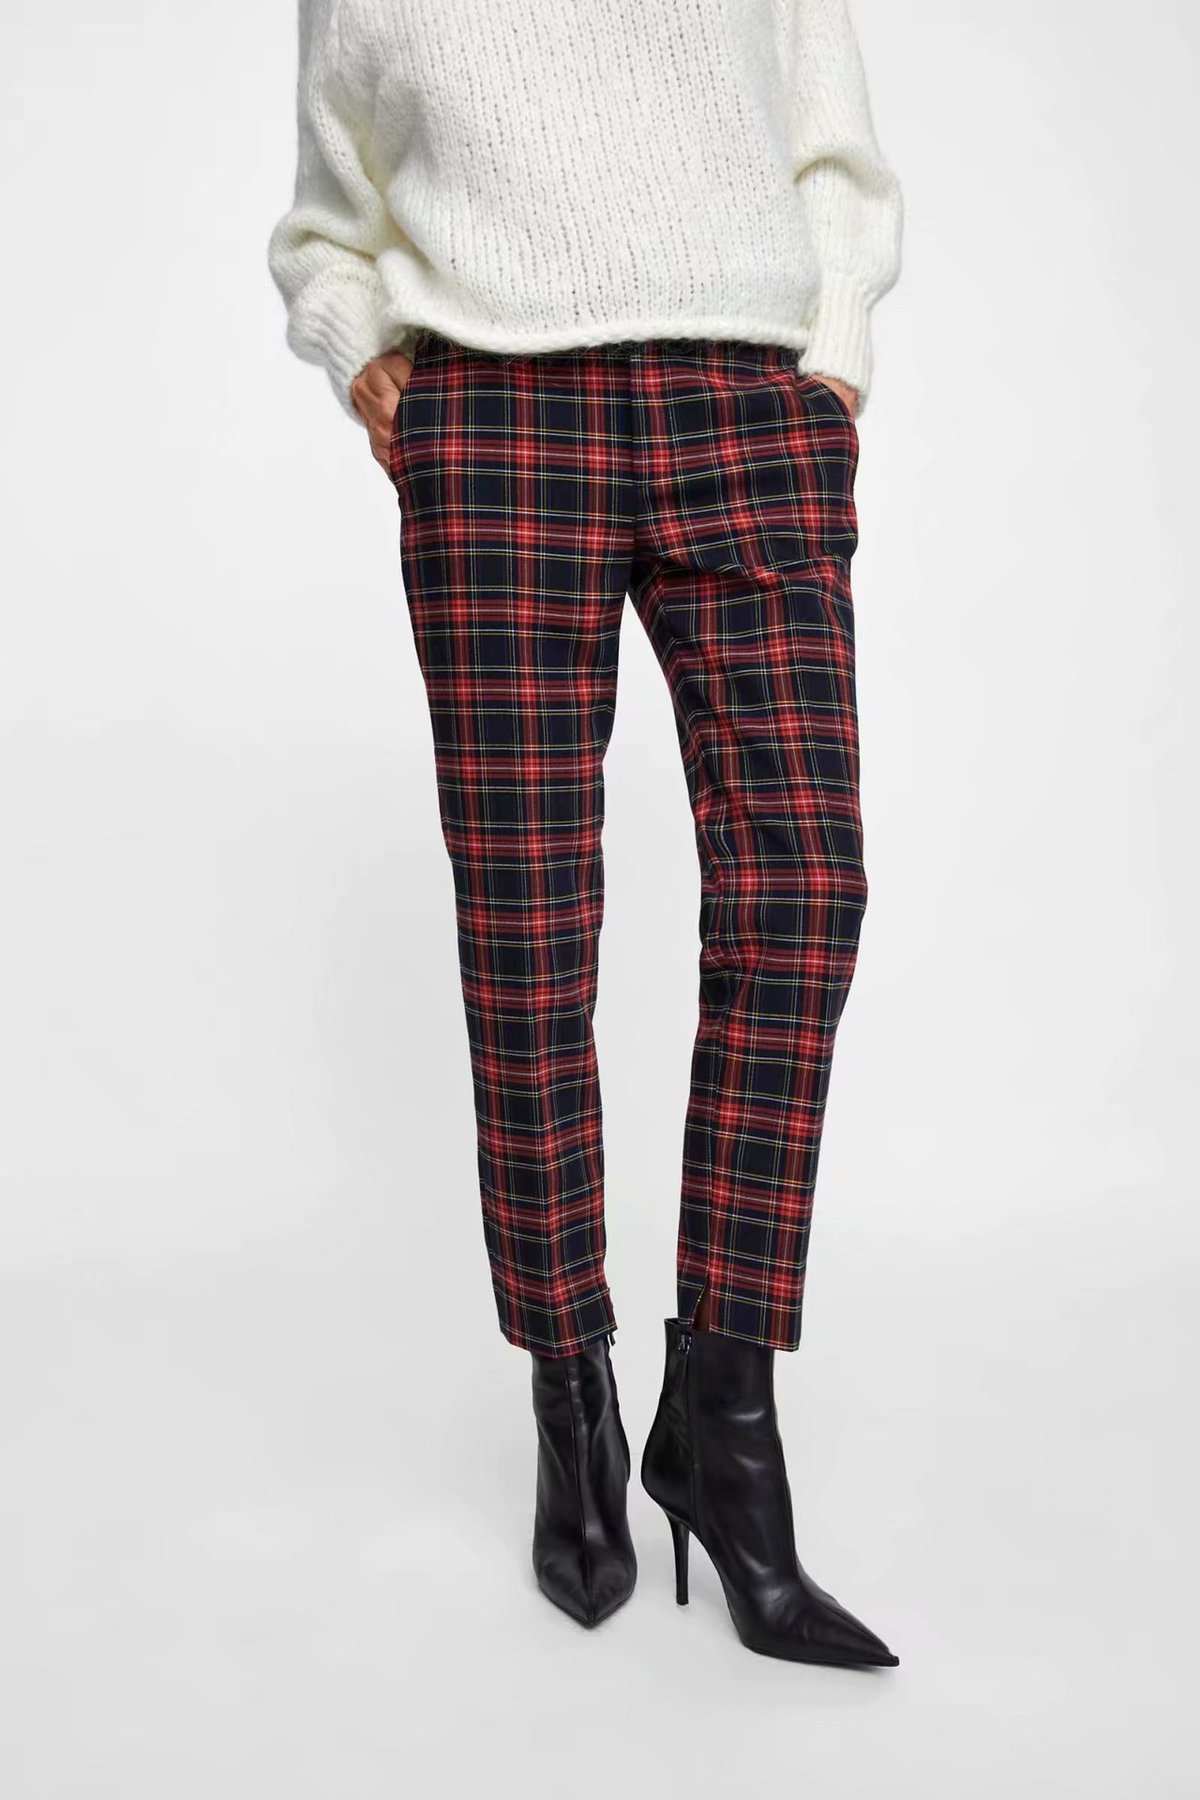 2018 Women Red Plaid Pants British Style Retro Vintage Checker Pattern Trousers 5